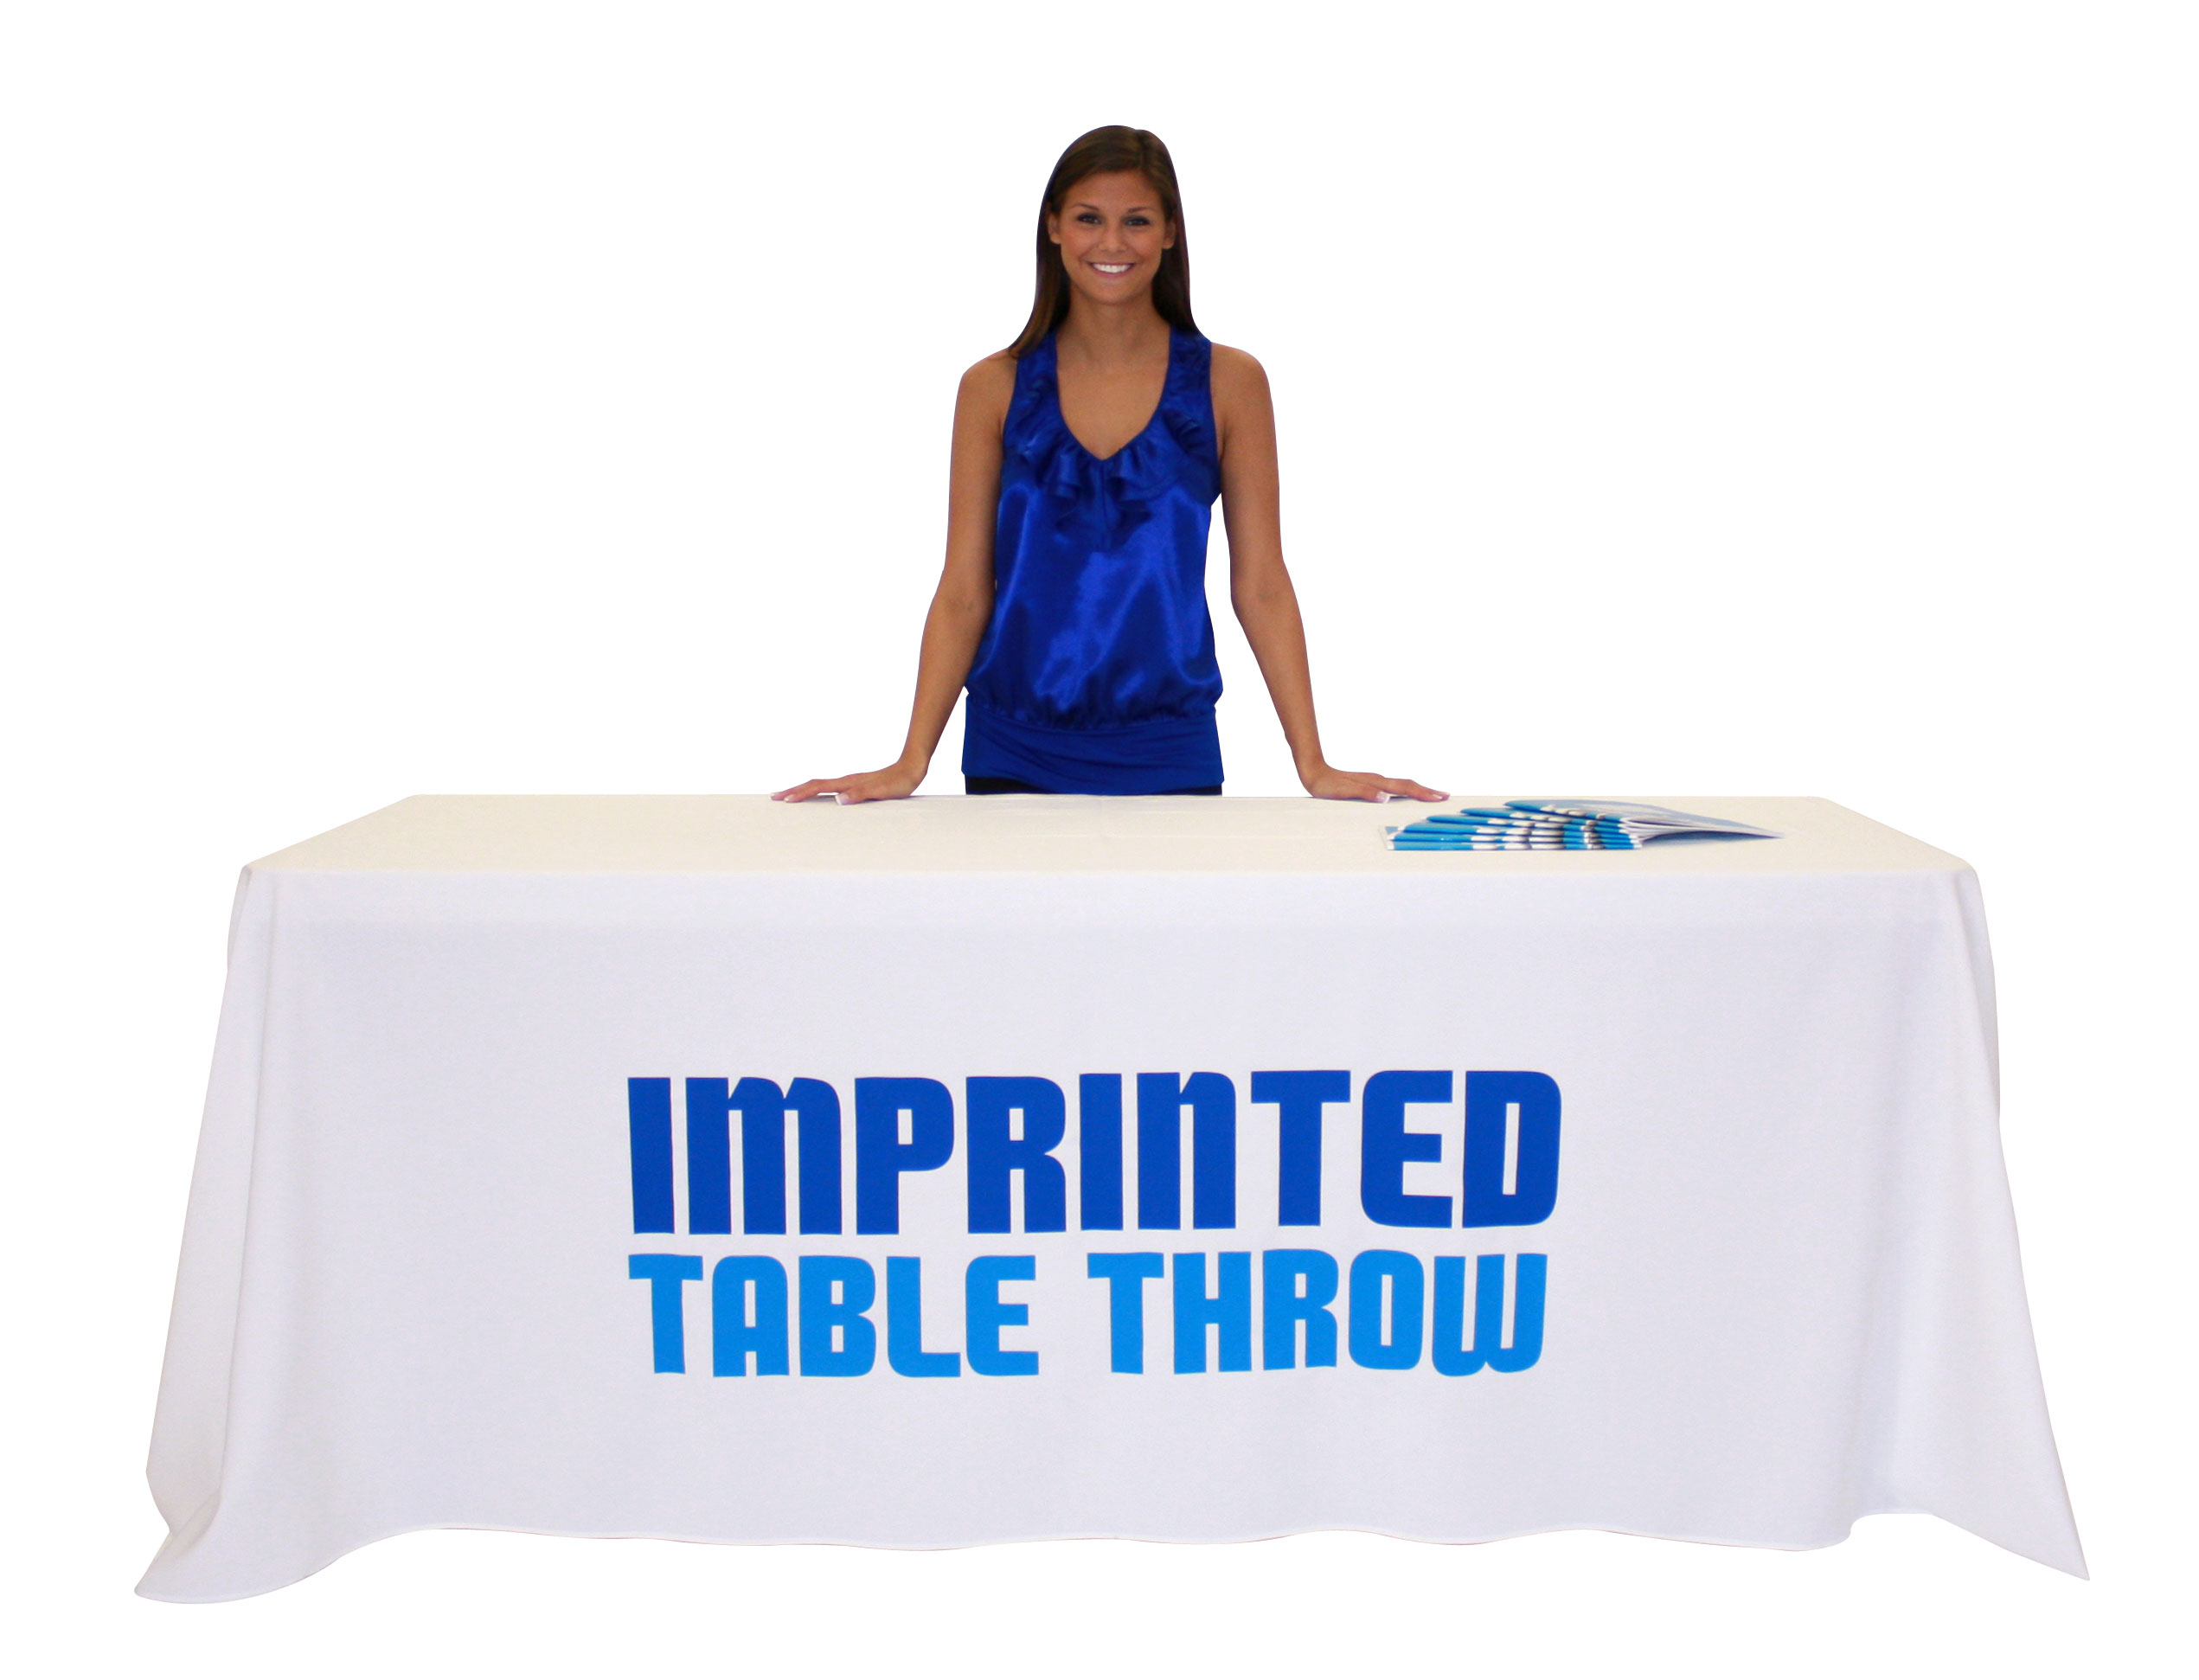 table throws step one signs